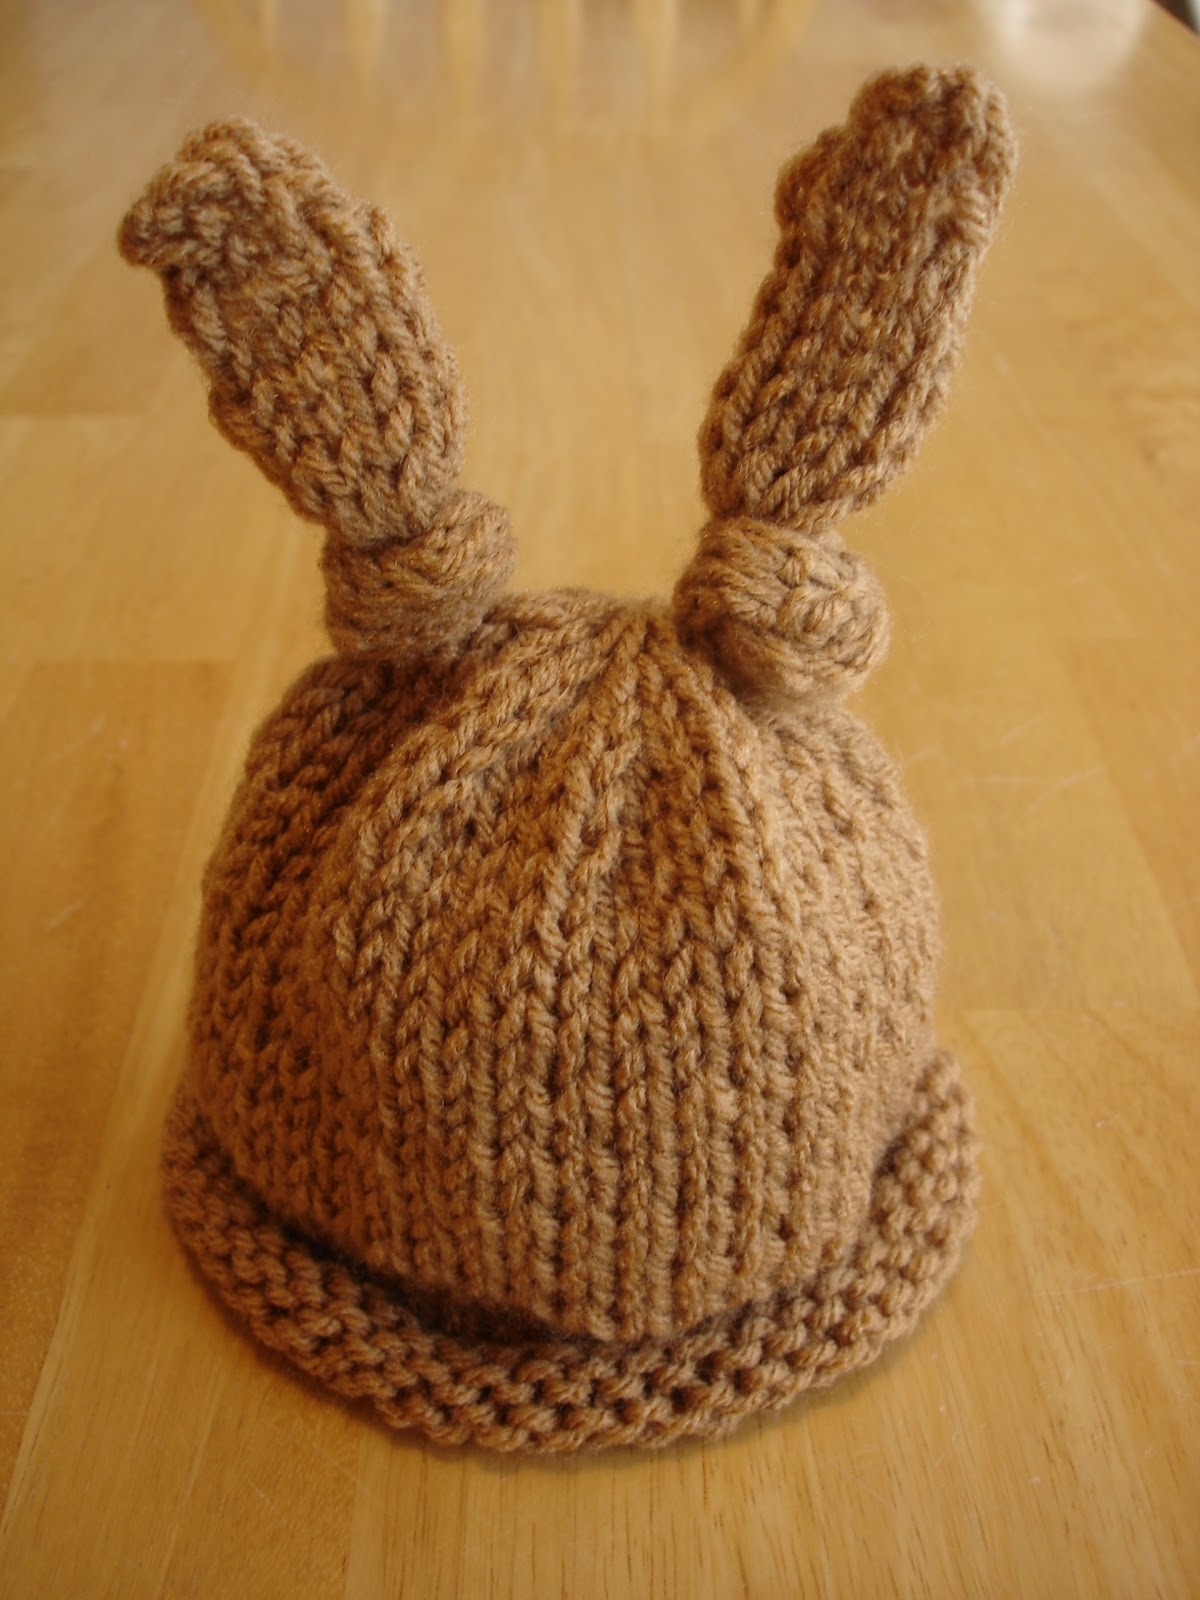 Baby Hats Free Knitting Patterns : Fiber Flux: Free Knitting Pattern...Baby Bunny Newborn or Preemie Hat!